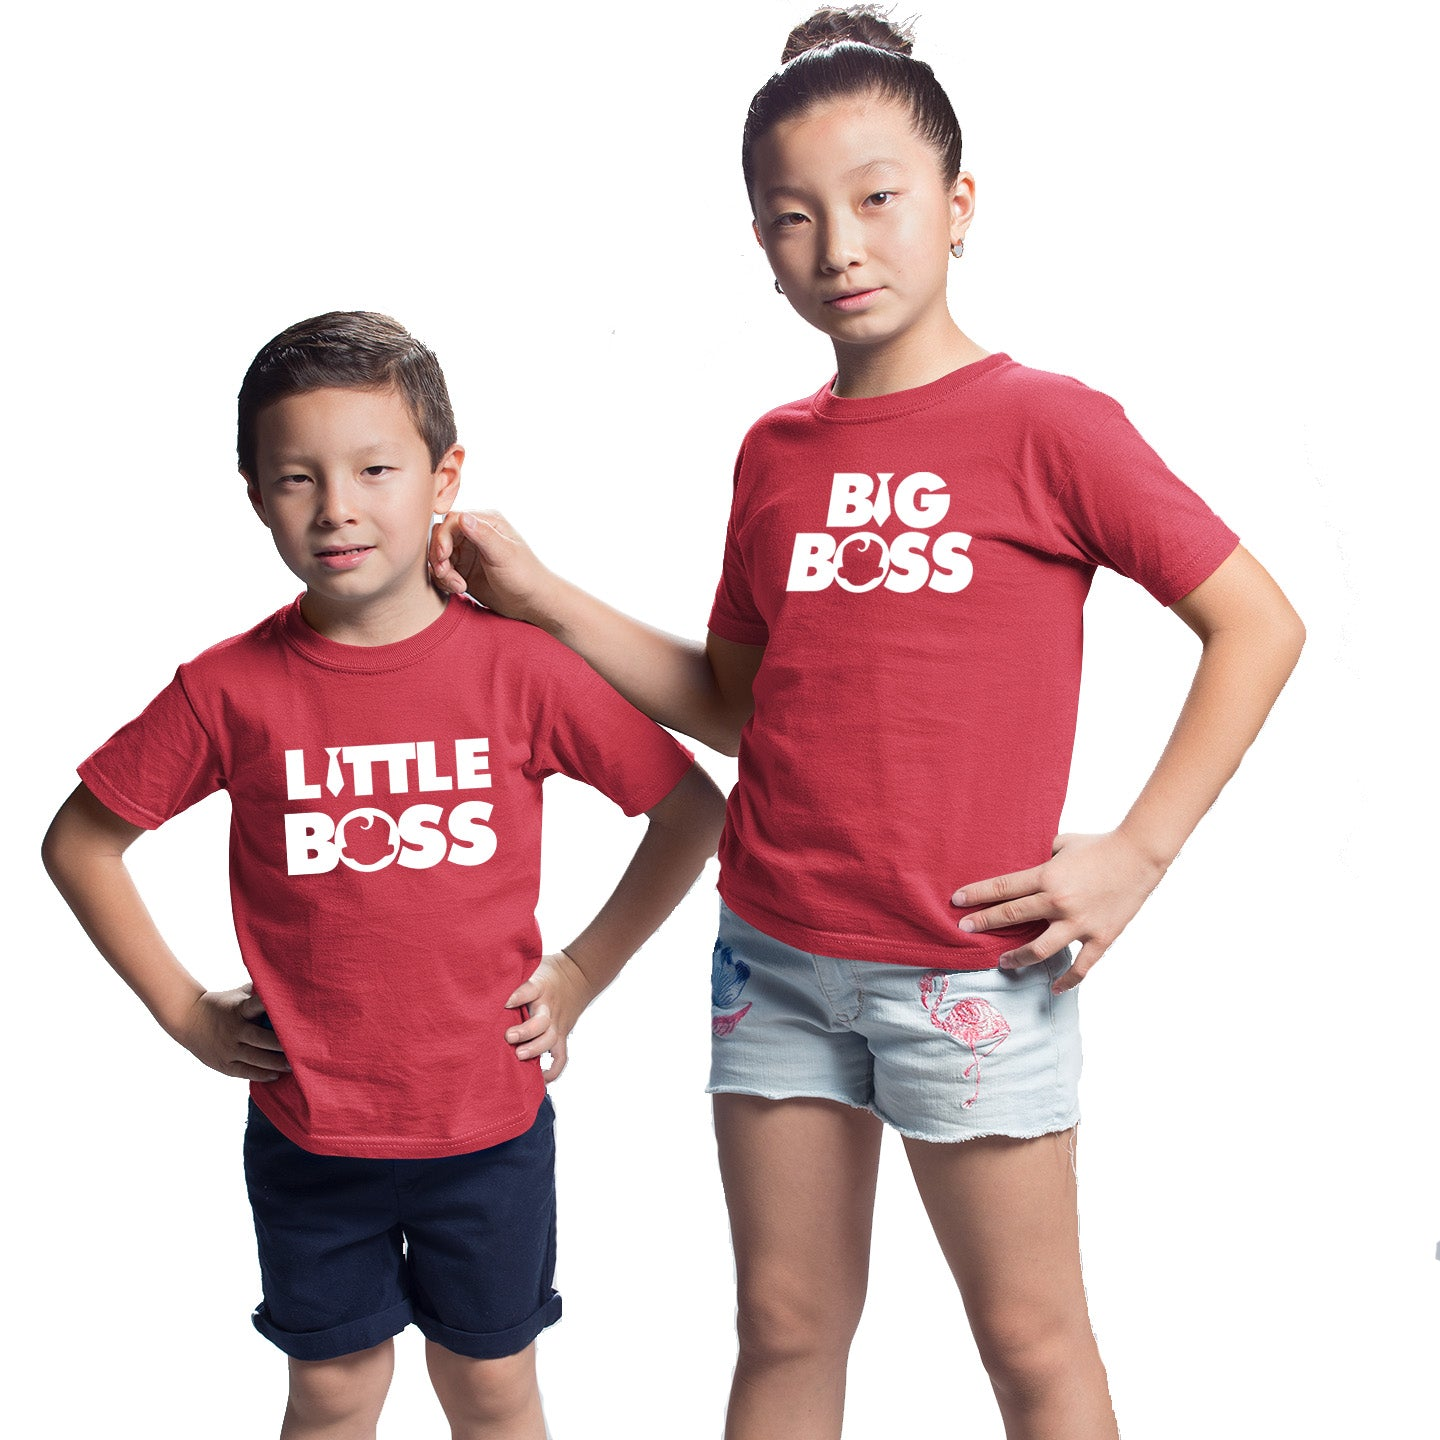 Sprinklecart Big Boss Little Boss Printed T Shirt Combo Set of 2 Red Cotton T Shirt for Sibling